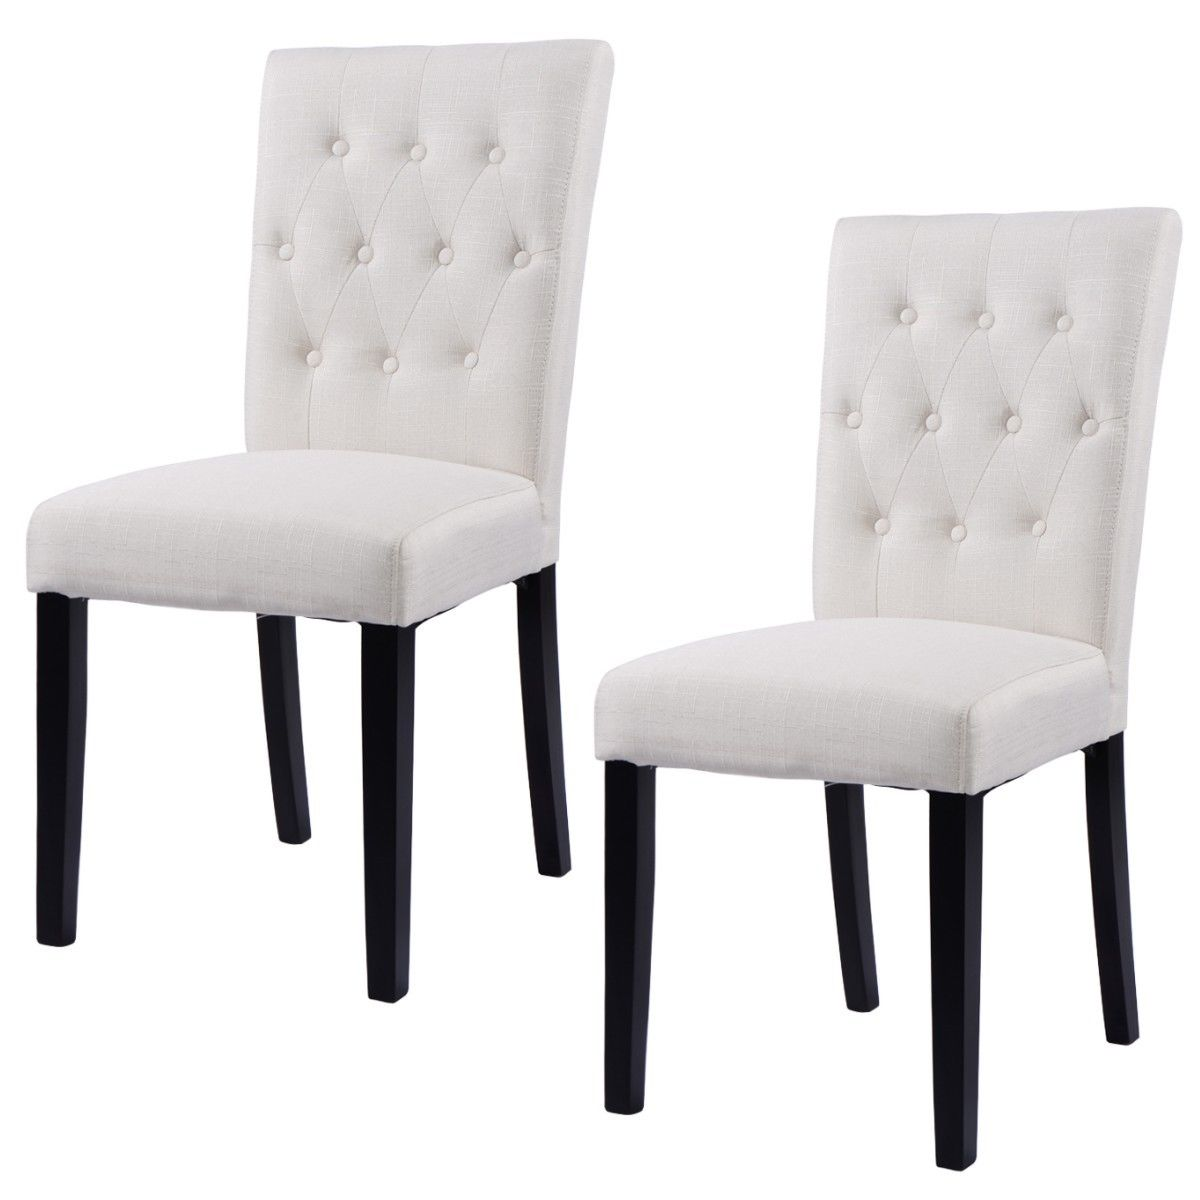 Giantex Set of 2pcs Fabric Dining Chair Armless Chair Modern Home Kitchen Living Room Furniture HW52778BE цена 2017